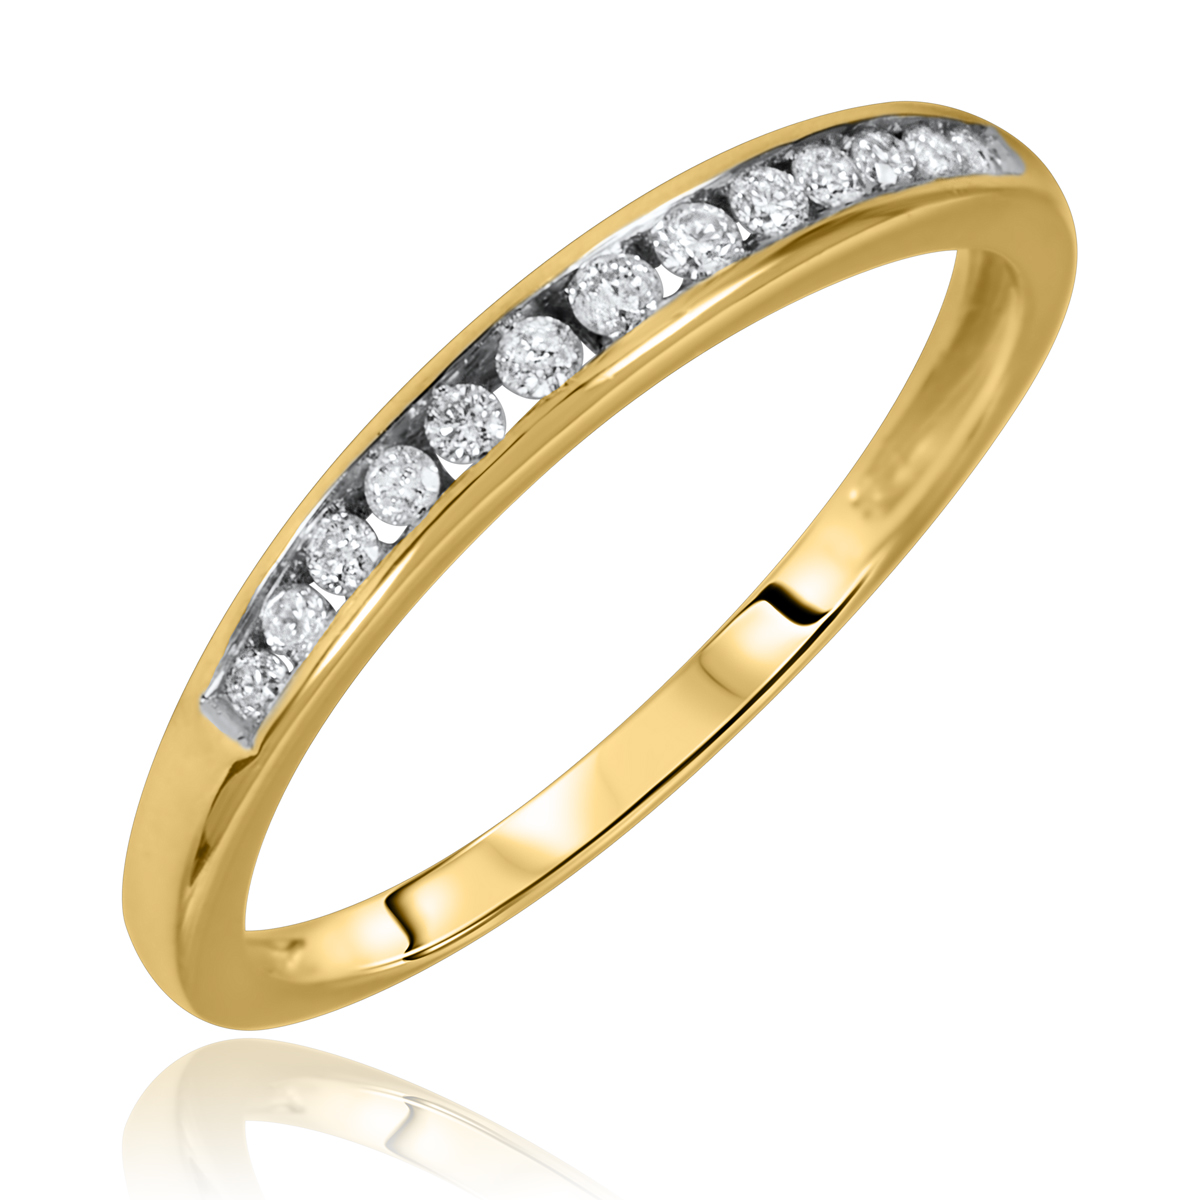 1/8 Carat T.W. Round Cut Diamond Ladies Wedding Band 14K Yellow Gold- Size 8